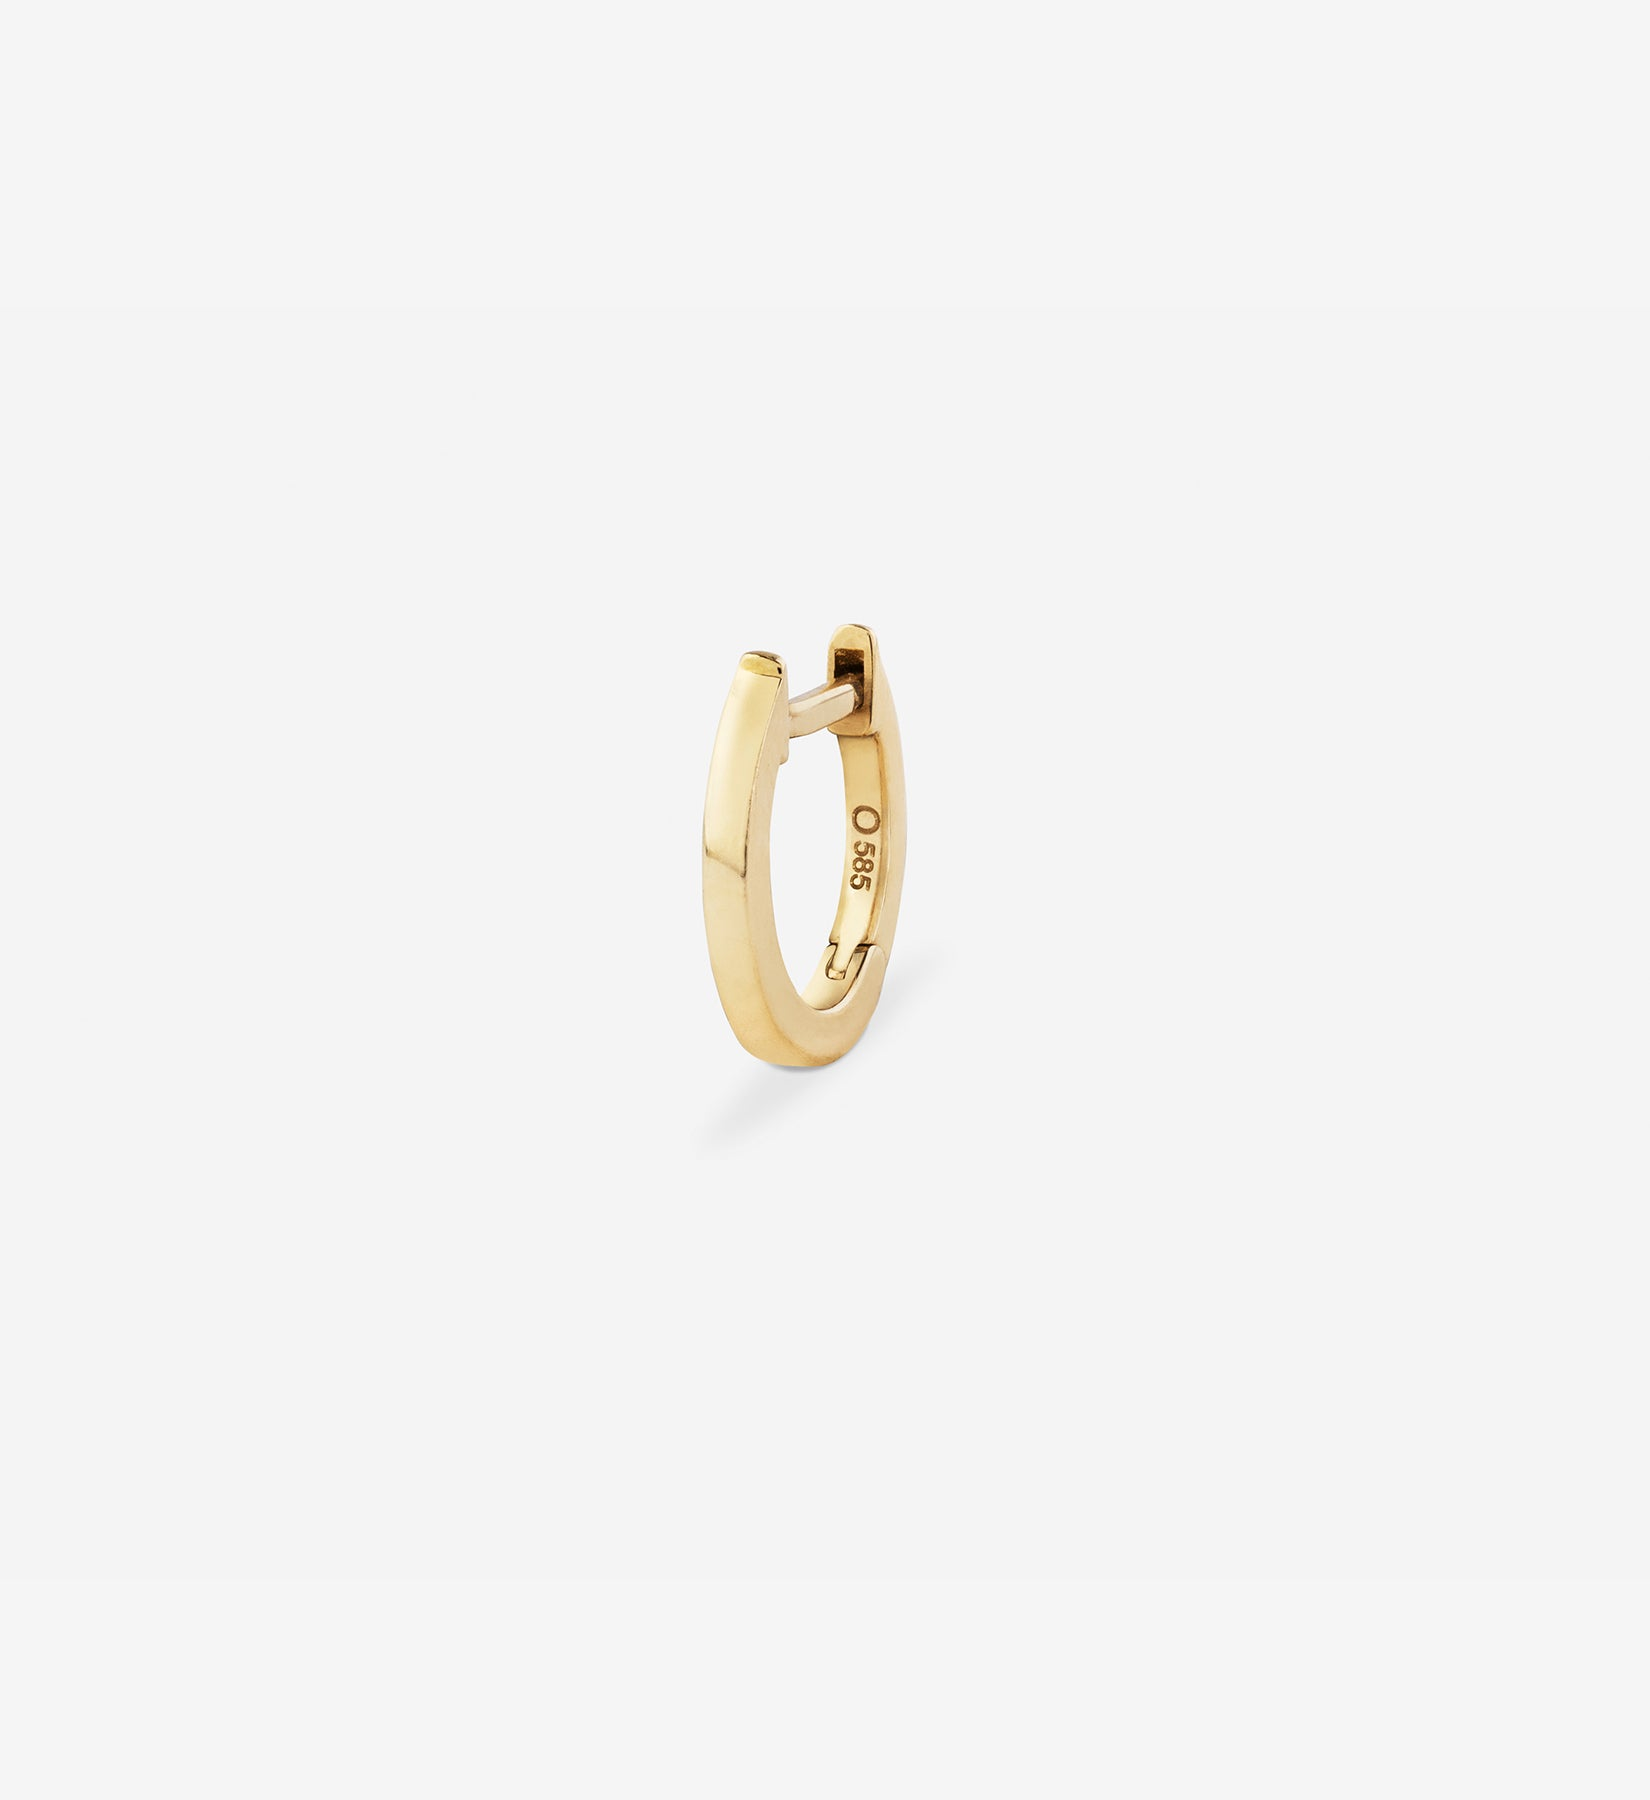 OUVERTURE, Fine jewelry, 14K gold, diamonds, golden ring, diamond ring, golden earring, diamond earring. Handcrafted jewelry. Designed in Berlin. Honestly priced. Demifine. Earparty. Diamond stud. three-prong diamond stud. floating diamond stud. Diamond stud earring. huggie earring 0.00